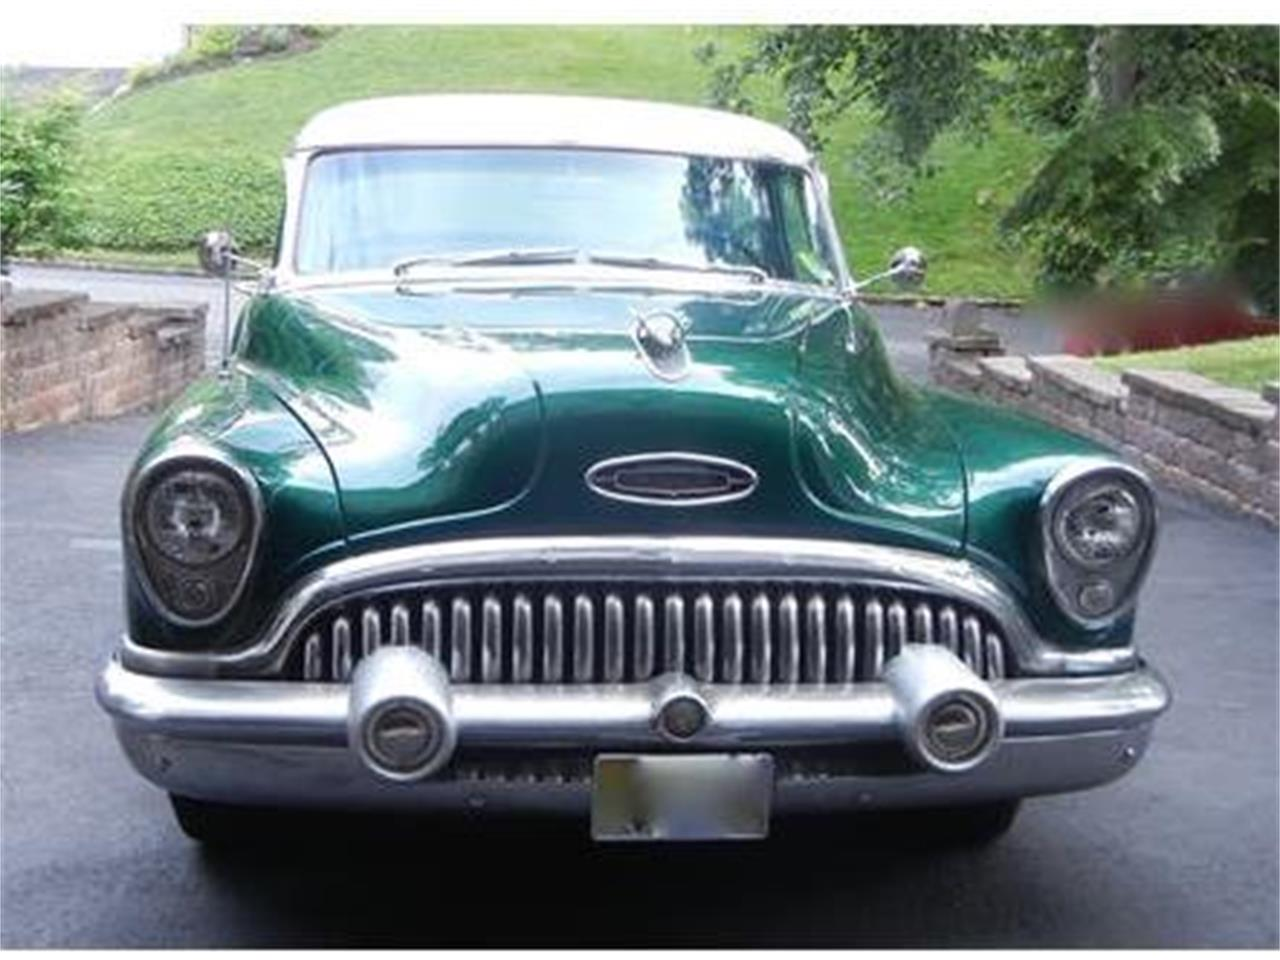 Large Picture of Classic '53 Buick Riviera - $51,000.00 Offered by a Private Seller - D2H3